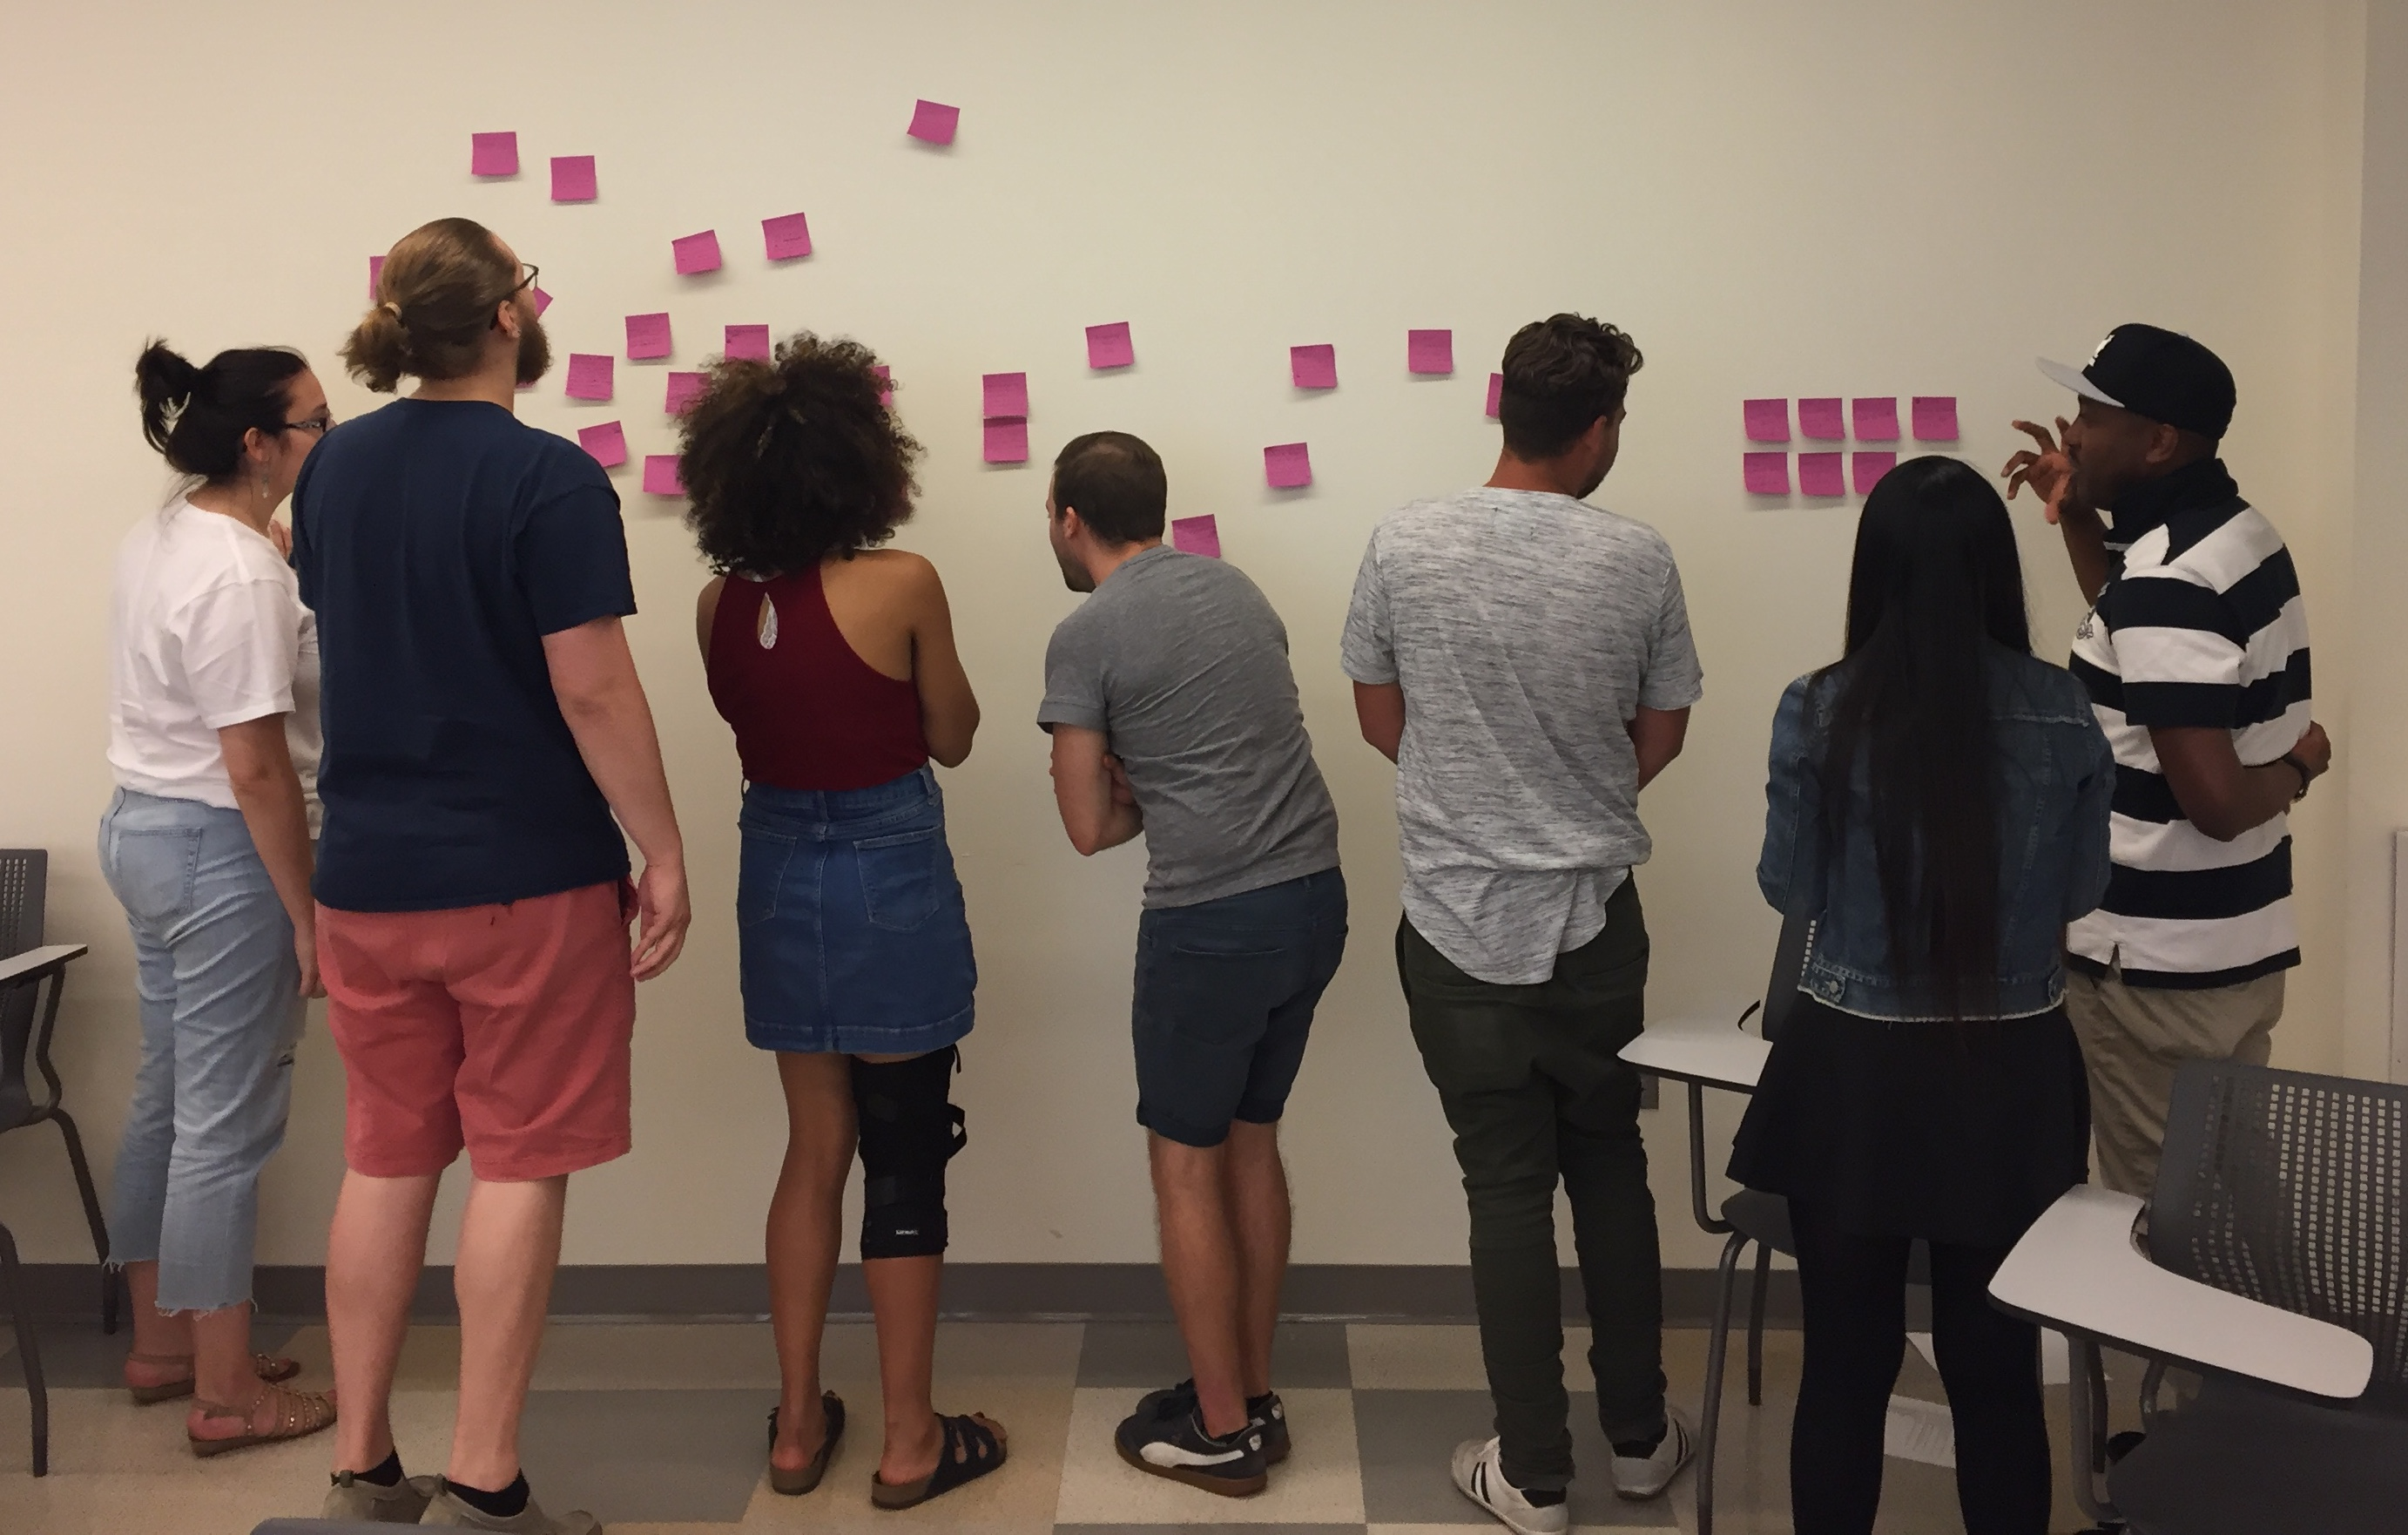 First-semester Entrepreneurship in the Arts students working together to mash-up creative enterprise ideas.